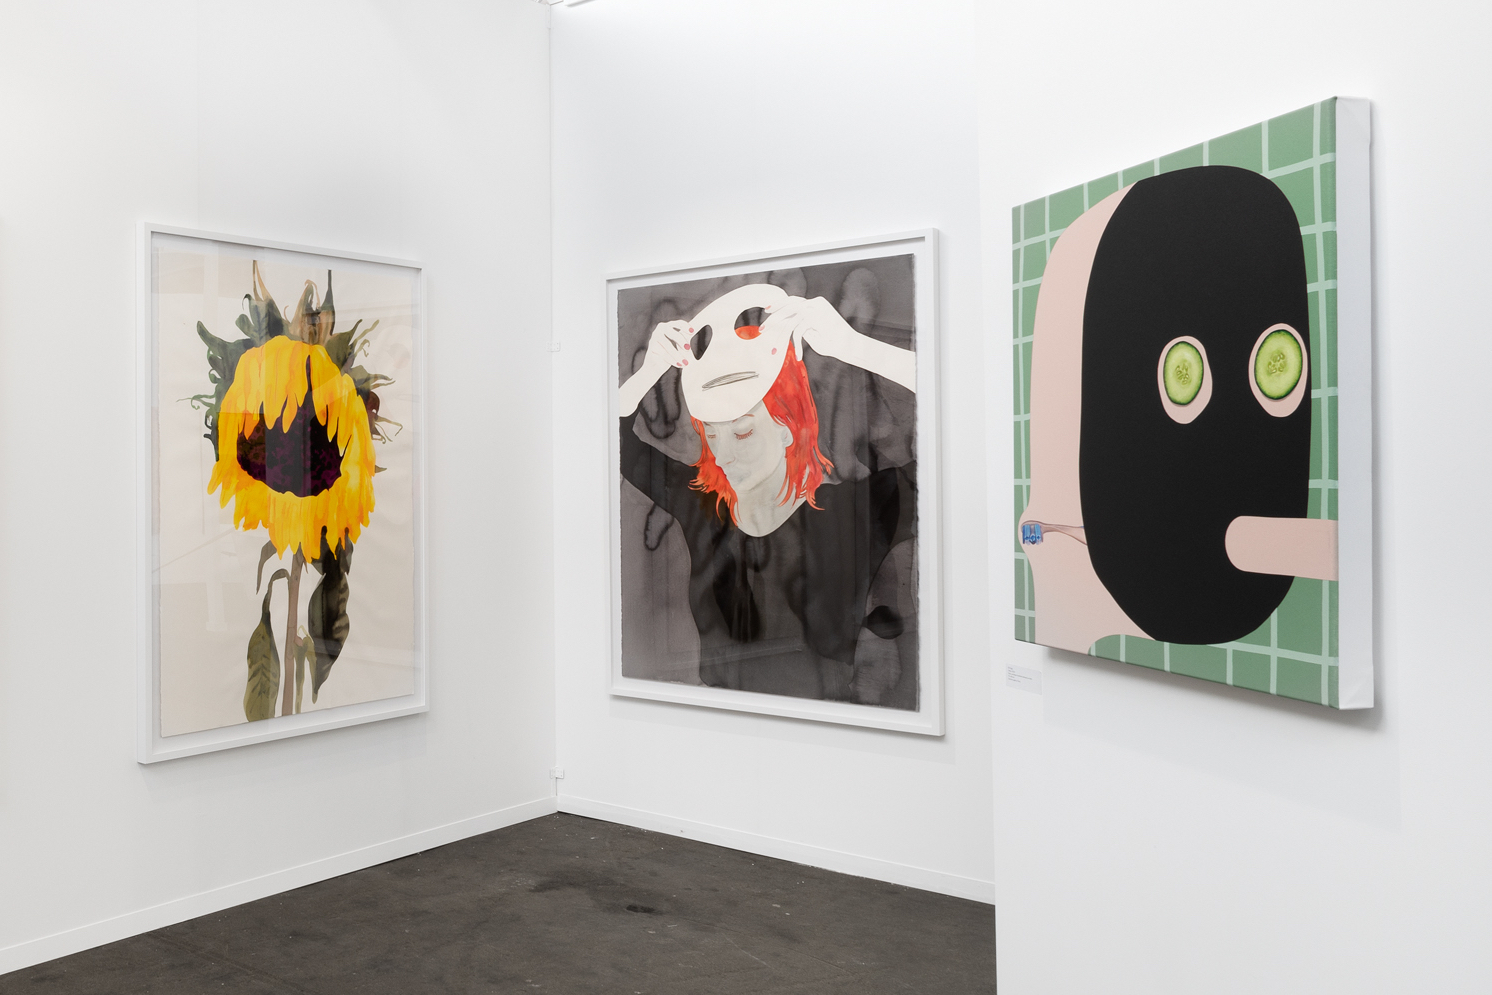 Art Brussels, Semiose Galerie, paintings by Francoise Petrovitch and Oli Epp